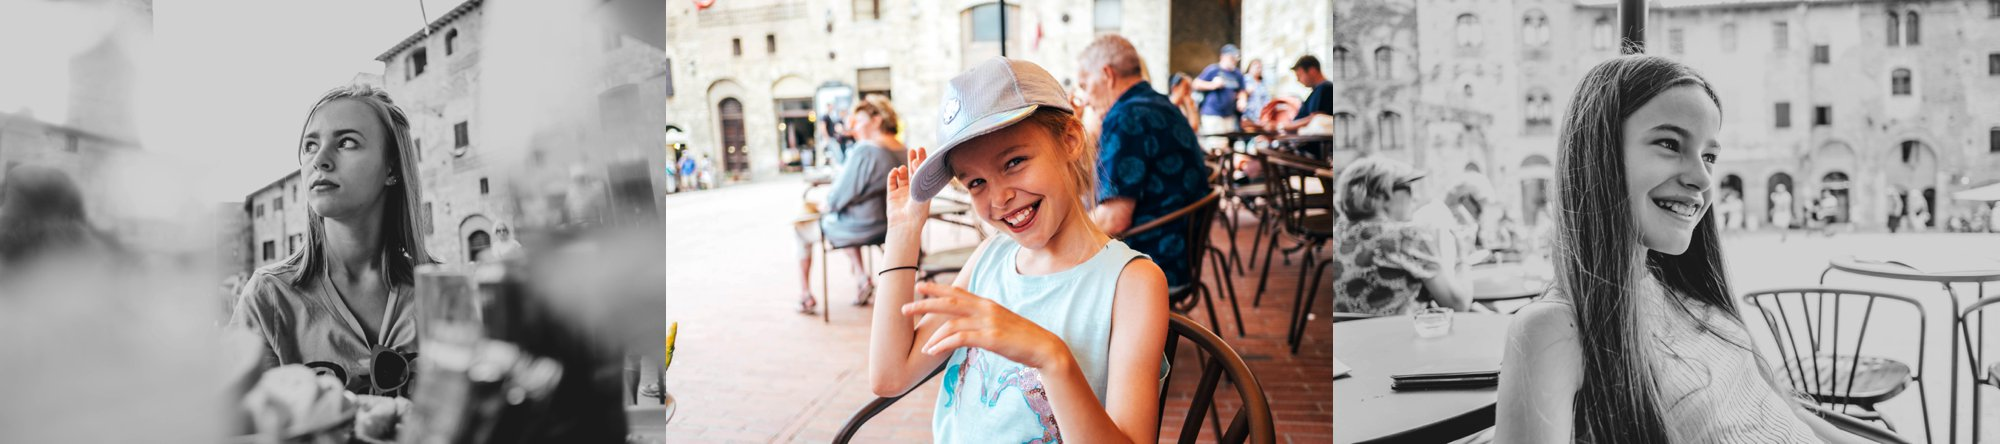 Girls in square in St Gimignano Tuscany Essex Documentary Wedding Travel Photographer